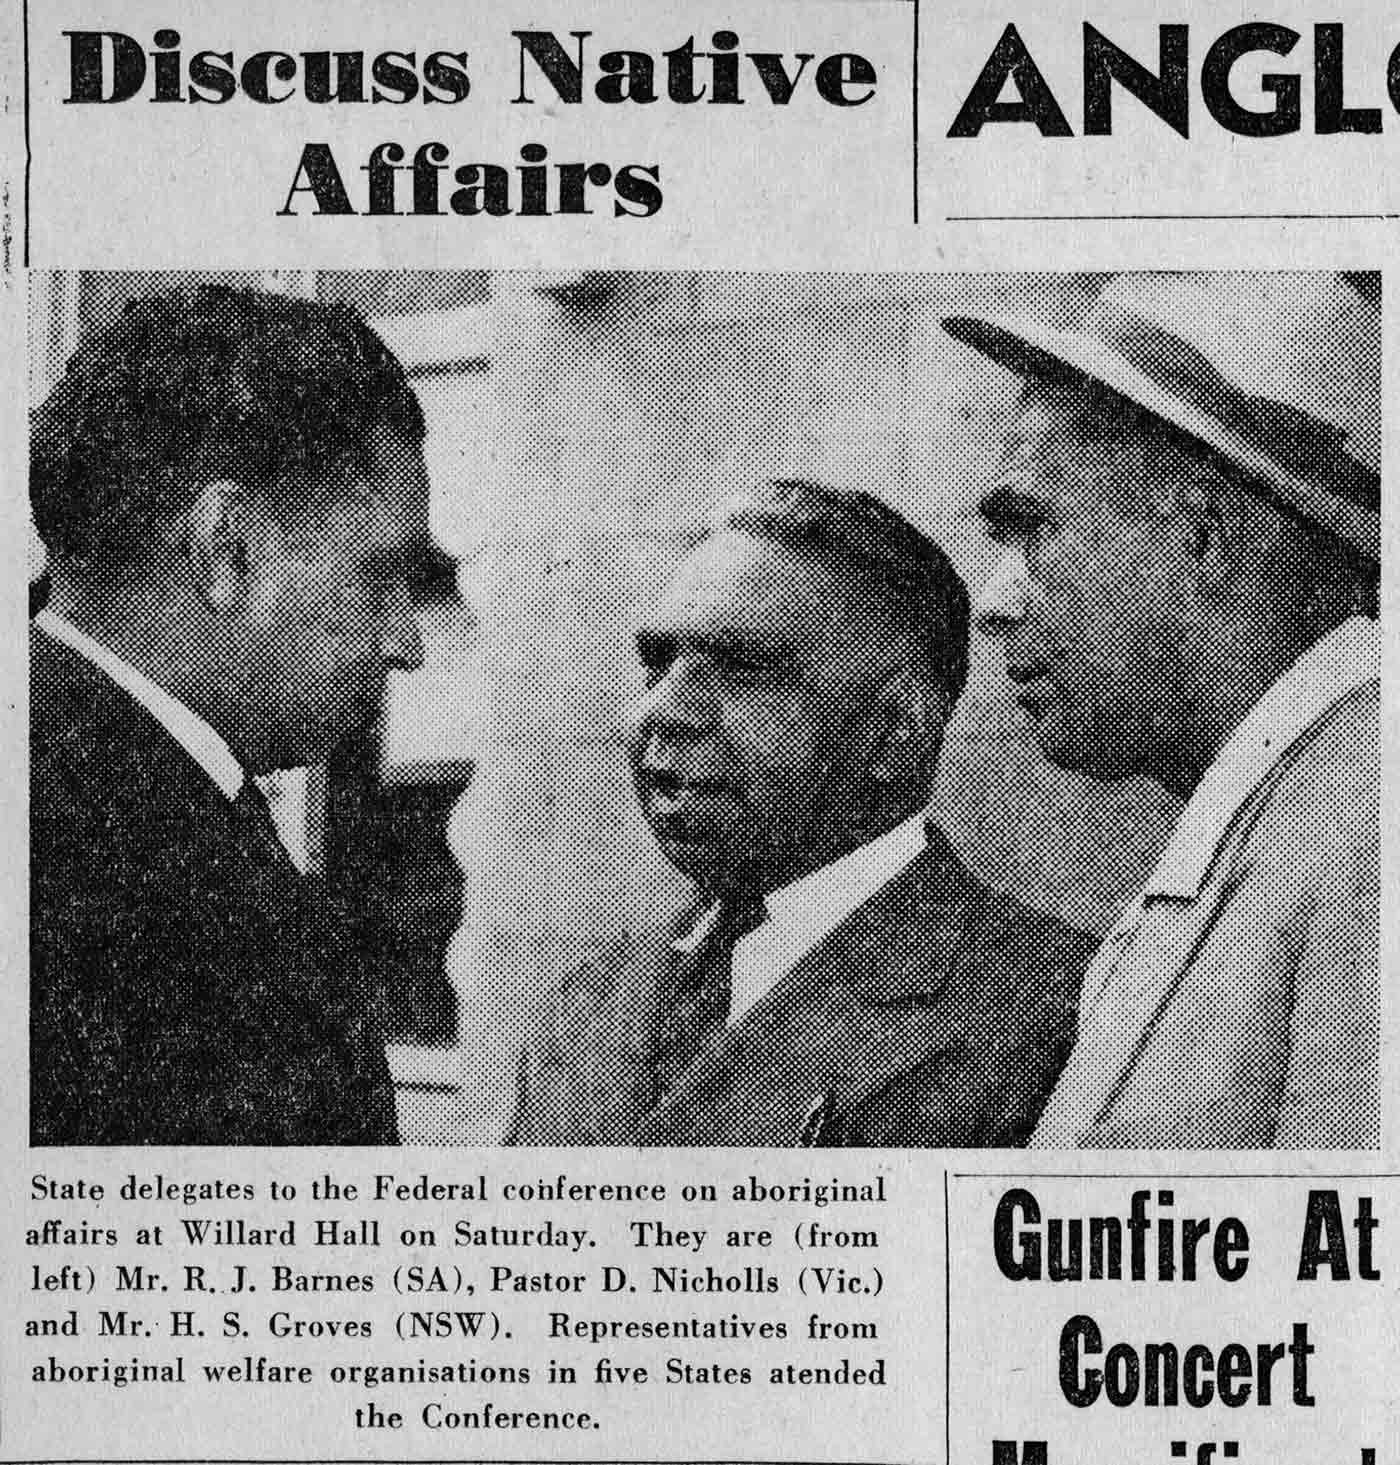 Newspaper clipping of three men in business suits in discussion. The text above reads: Discuss Native Affairs. - click to view larger image